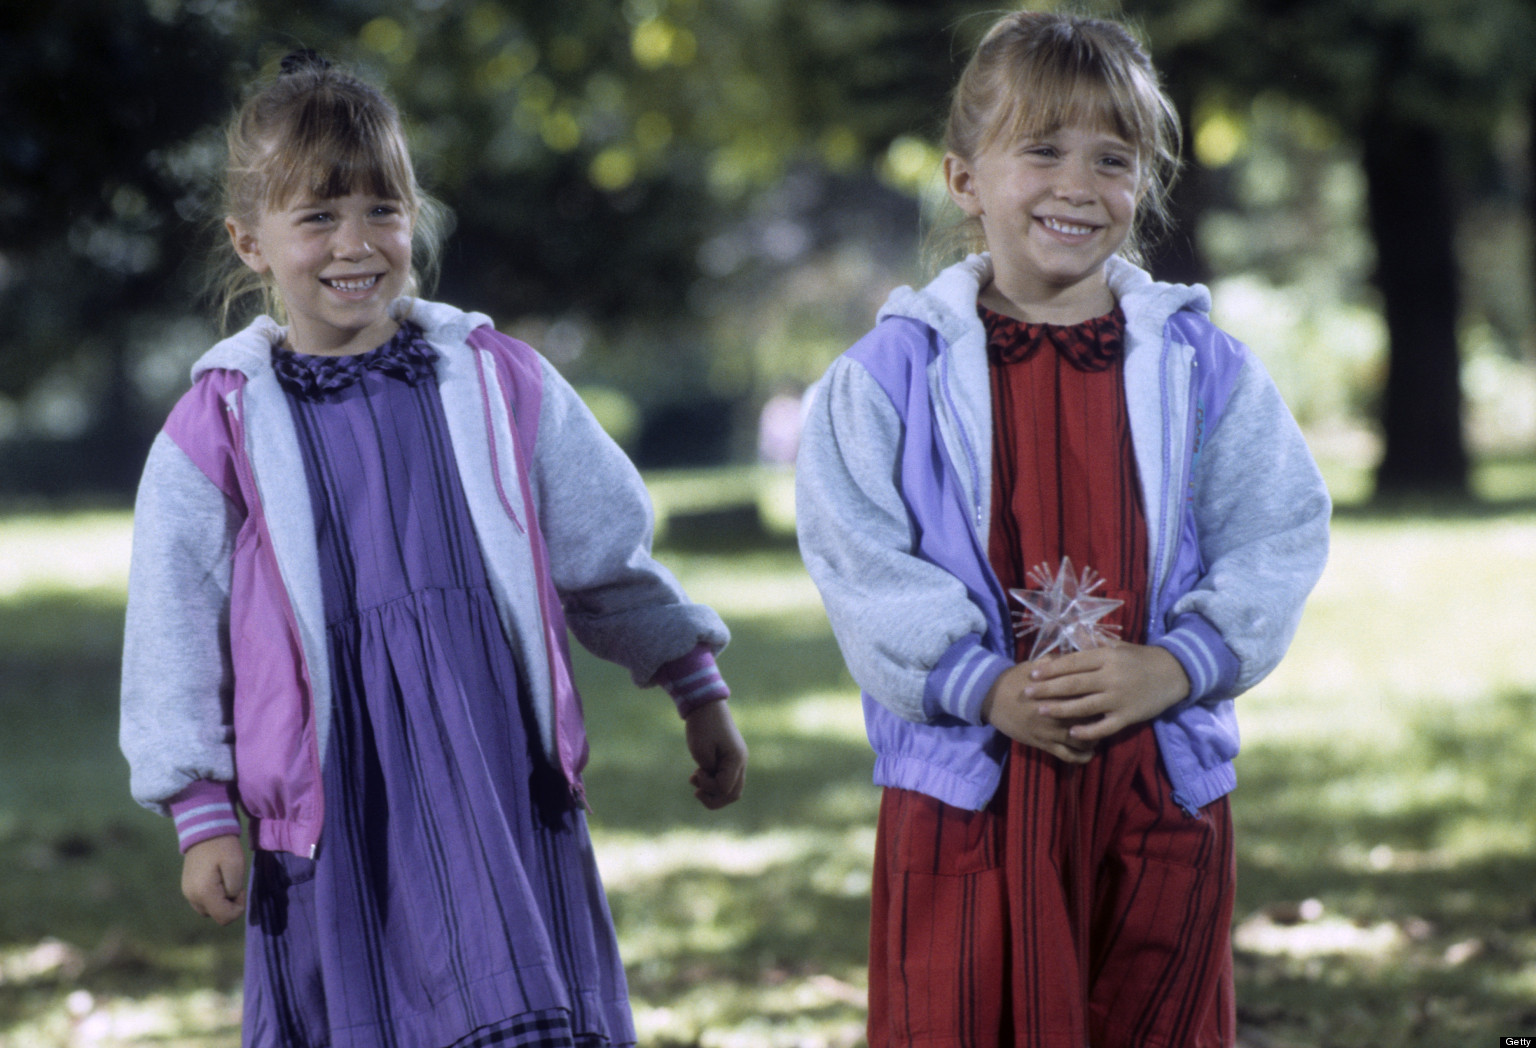 mary-kate and ashley movies: celebrate the olsen twins' birthday